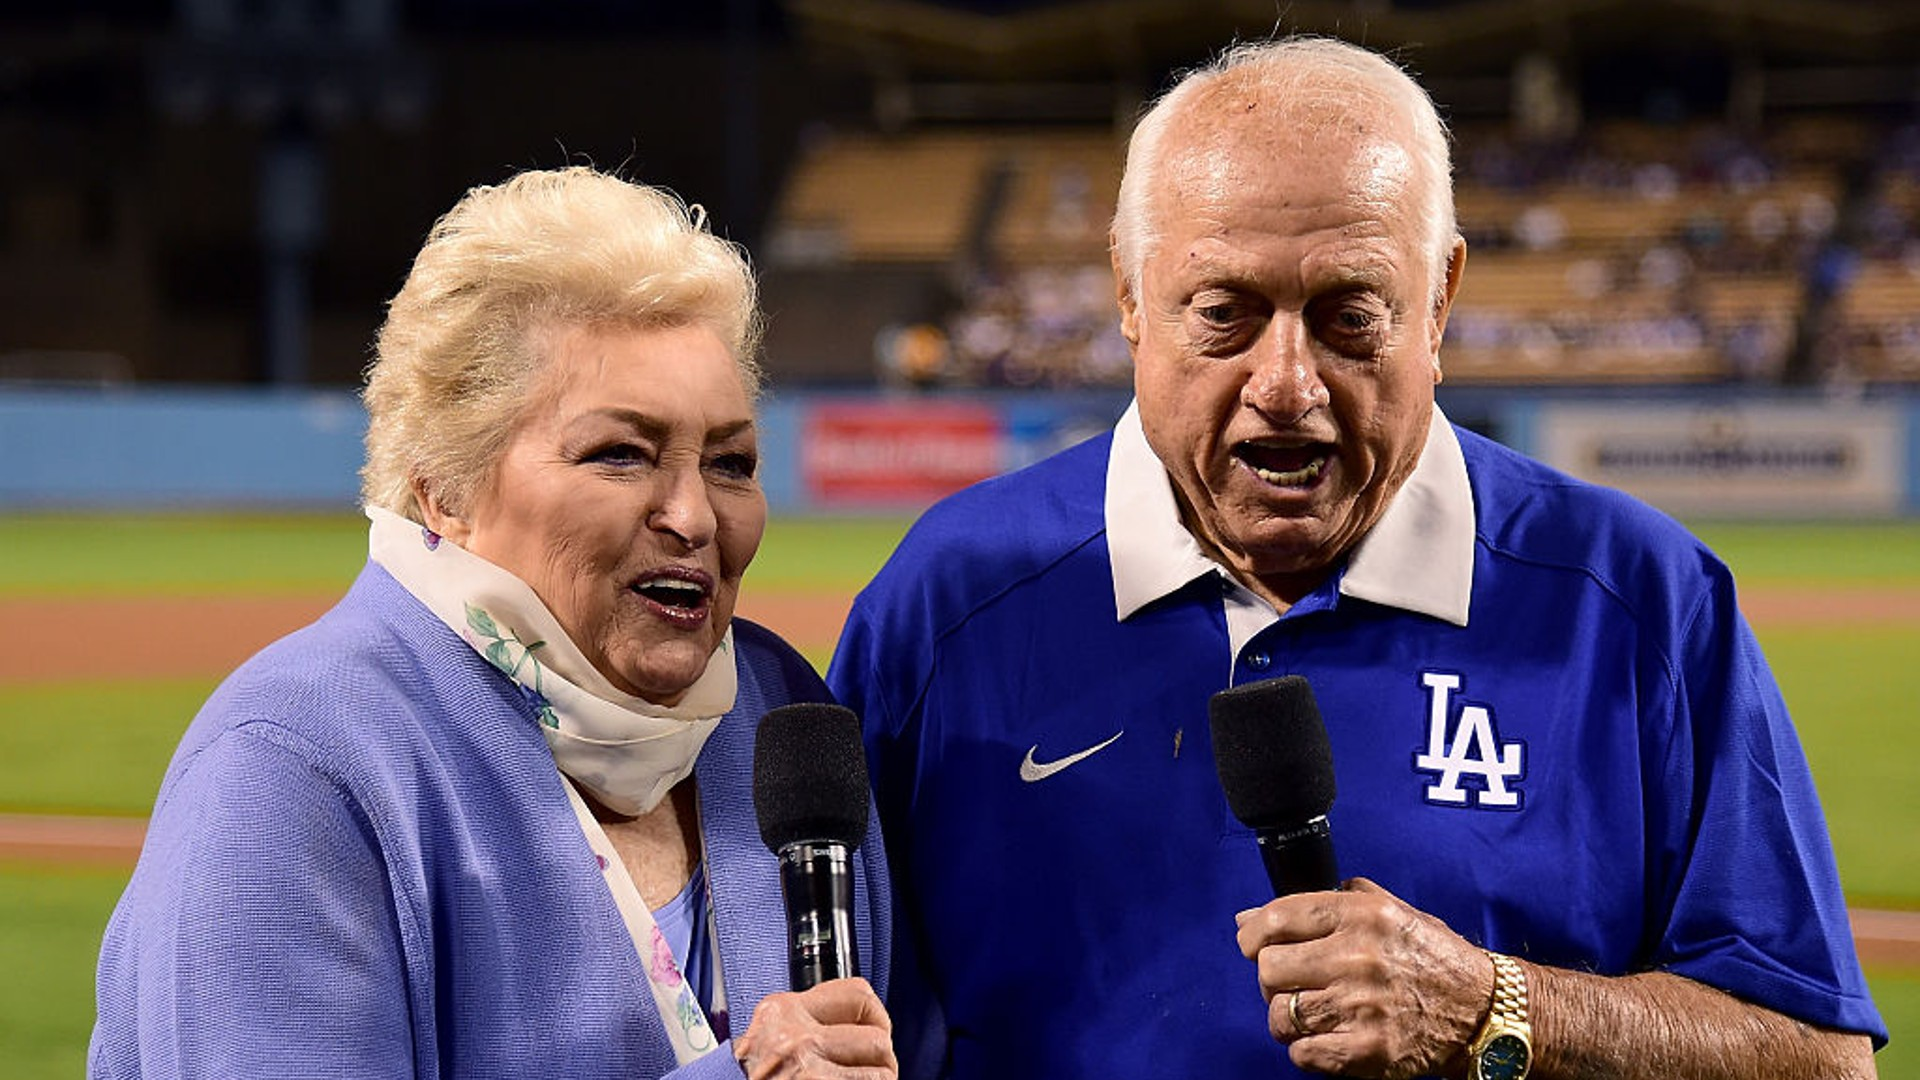 """Tommy and Jo Lasorda make the """"play ball"""" announcement on Tommy's 89th birthday, before the game between the Los Angeles Dodgers and the Colorado Rockies at Dodger Stadium on September 22, 2016 in Los Angeles, California. (Photo by Harry How/Getty Images)"""